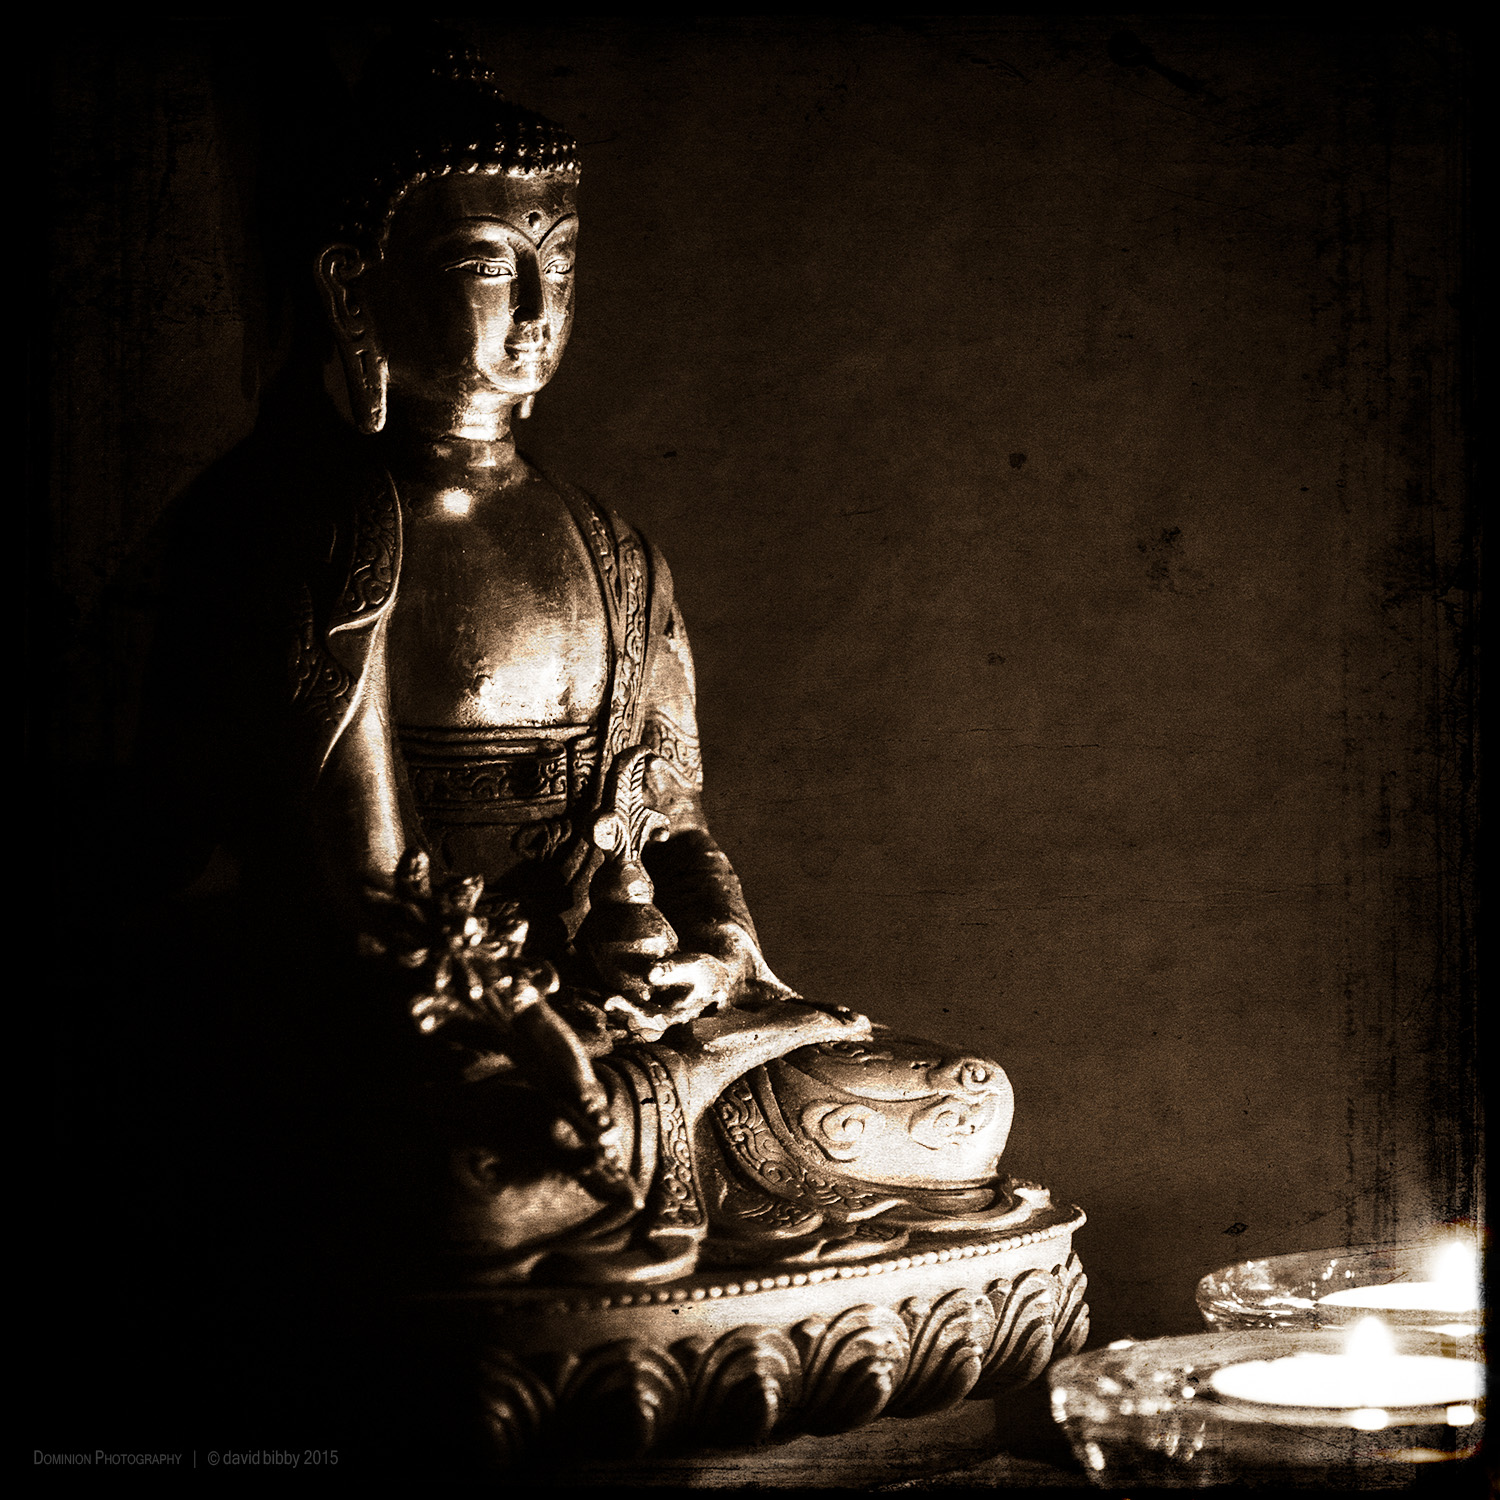 Purifying negativity   With my palms pressed together And my mind fearful of suffering, Prostrating myself again and again, I confess them all before the Protectors.